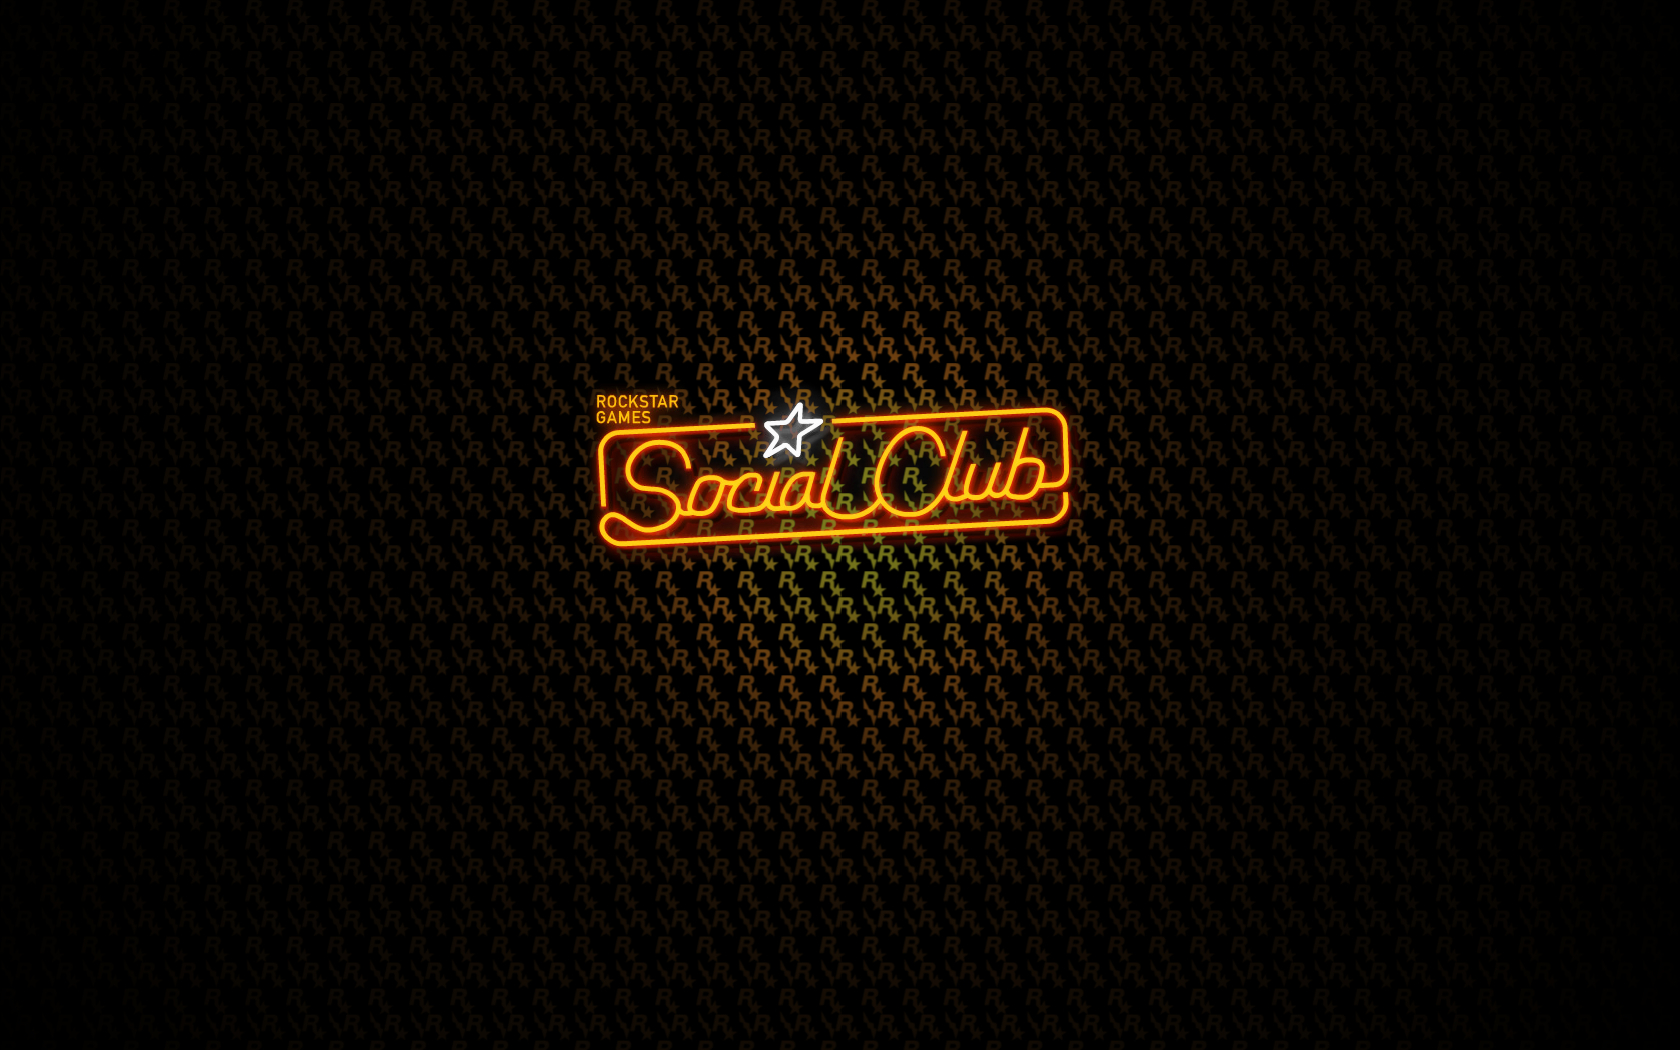 Liberty City Survivor Rockstar Social Club Wallpaper 1680x1050